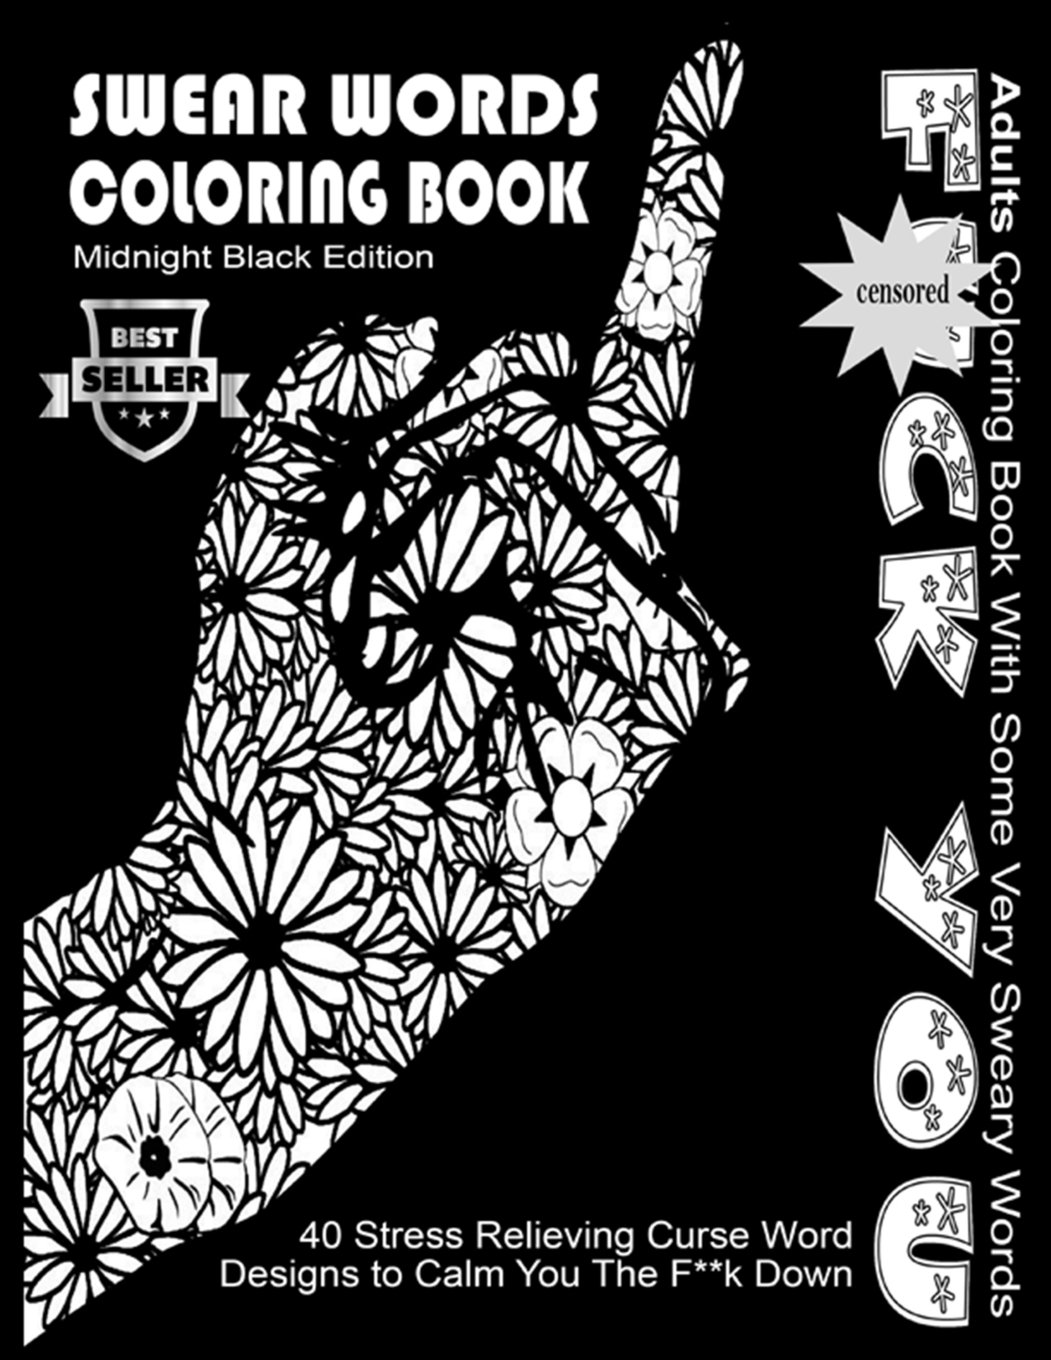 Swear Word Coloring Book : Midnight Black Edition Best Seller Adults Coloring Book With Some Very Sweary Words: 40 Stress Relieving Curse Word Designs ... Words Coloring Books For Adults) (Volume 5) Paperback – May 23, 2016 Swear Words Coloring Books 15334